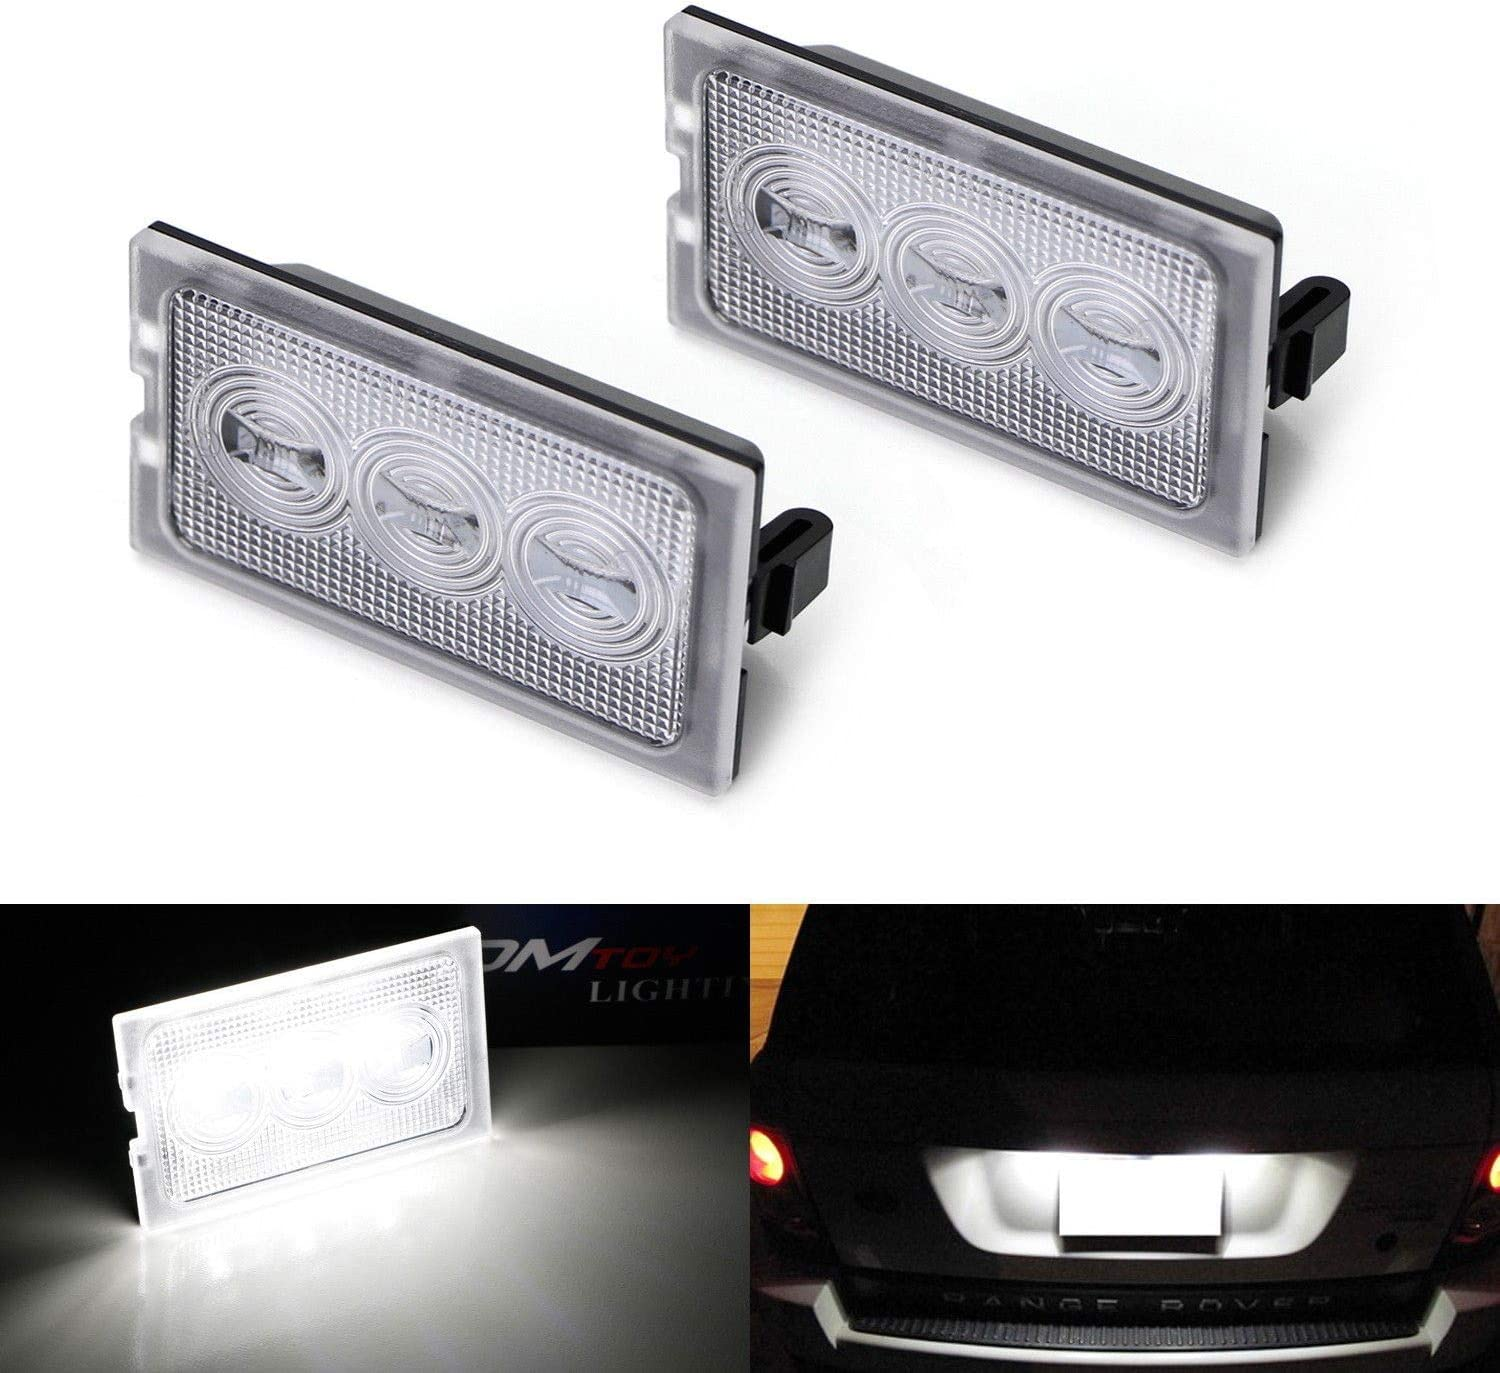 iJDMTOY OEM-Fit 3W Full LED License Plate Light Kit Compatible With 2005-13 Ranger Rover Sport, Discover LR3 LR4 & 06-14 Freelander 2 LR2, Powered by 3-piece Osram Xenon White LED